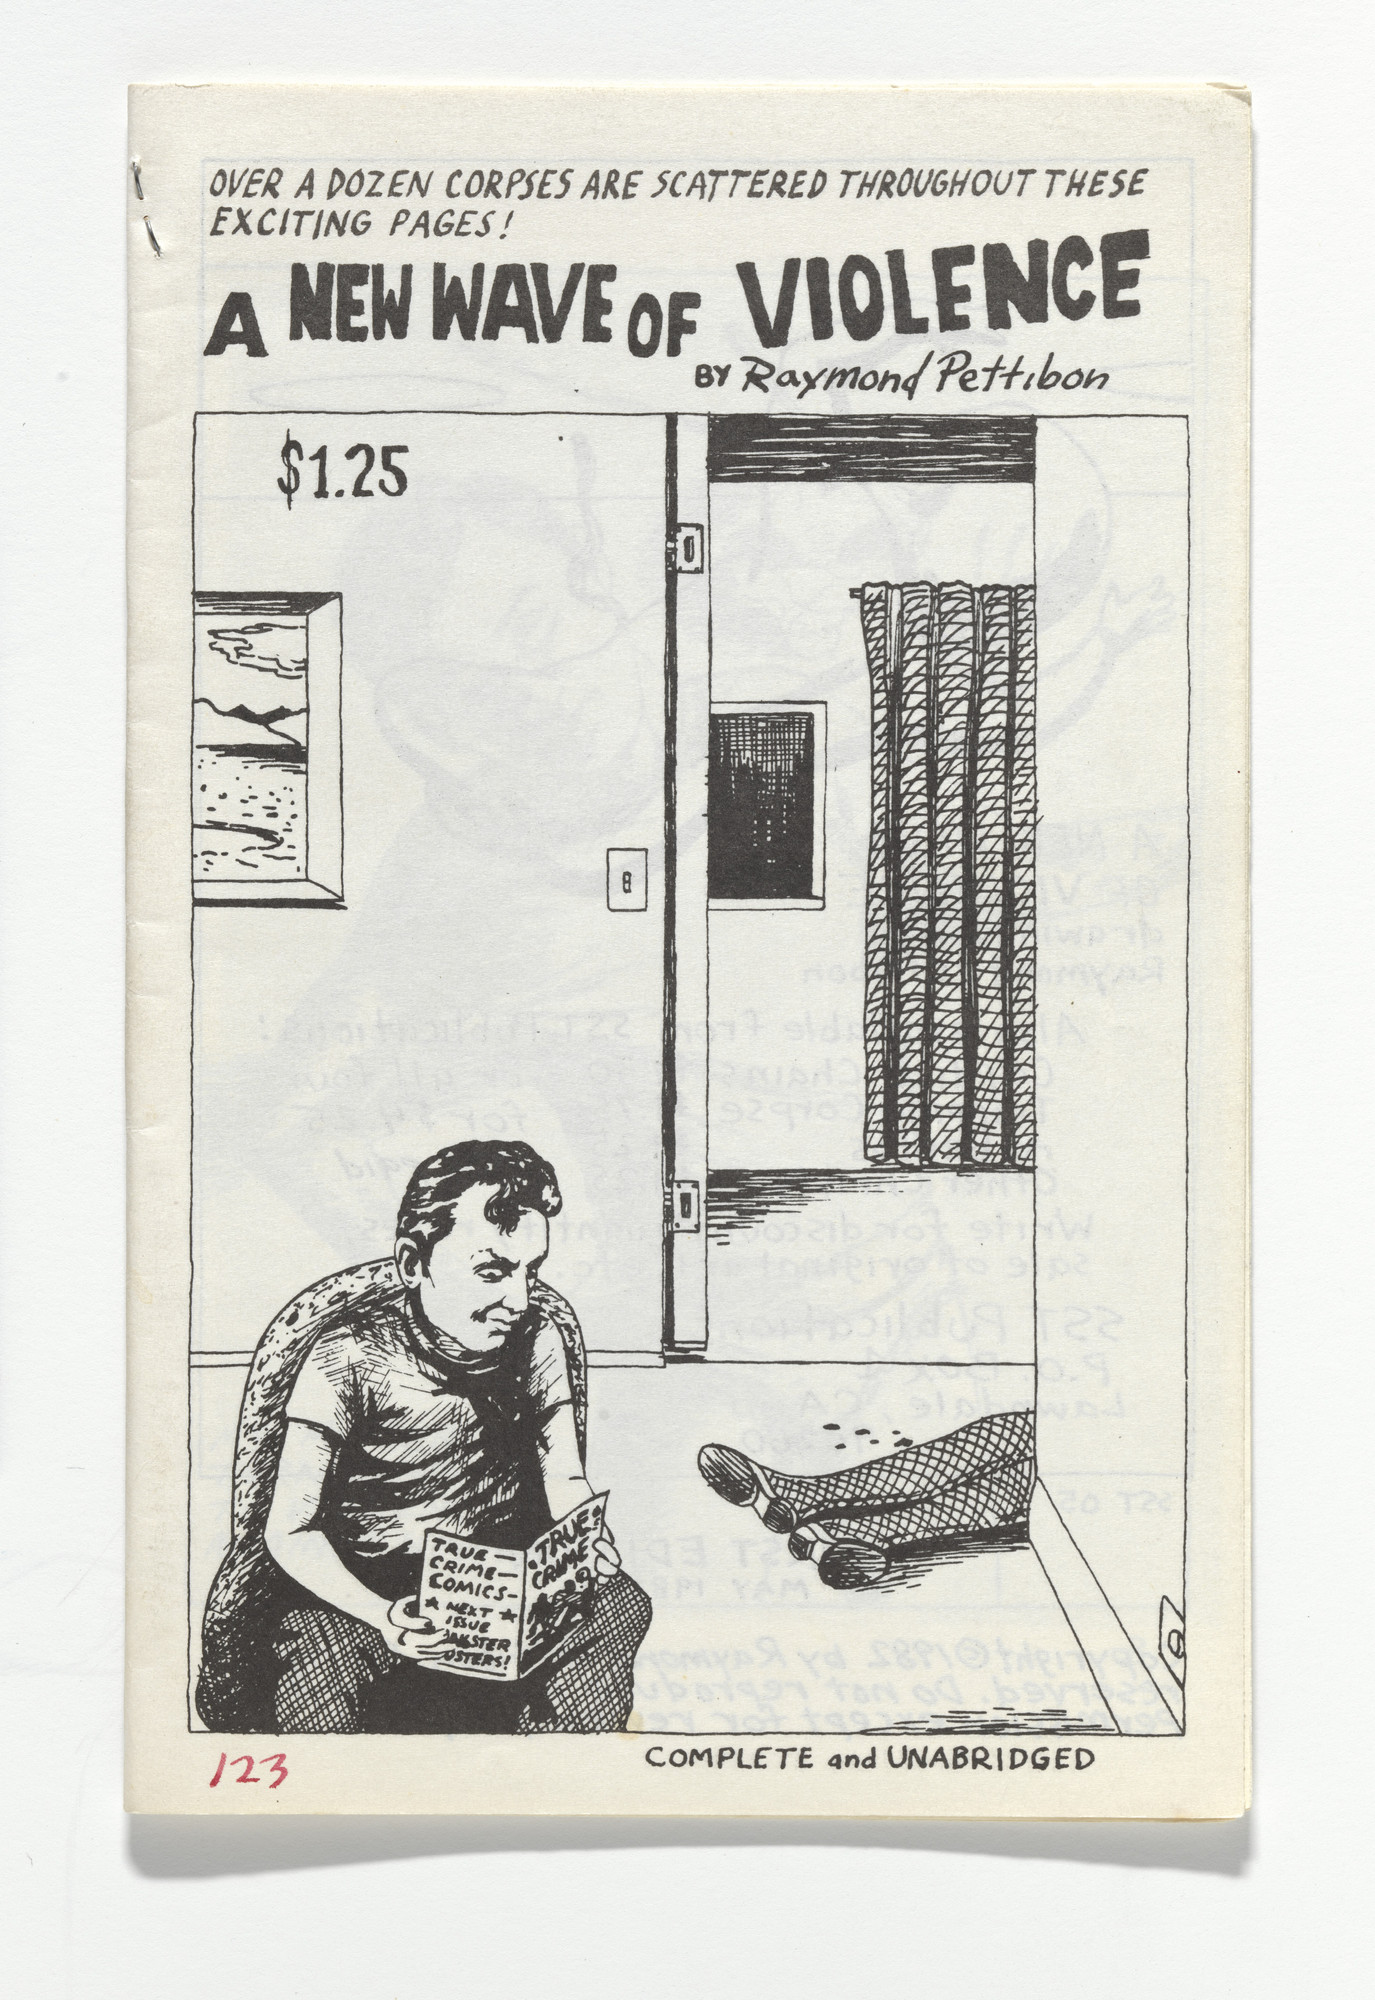 Raymond Pettibon. A New Wave of Violence. 1982